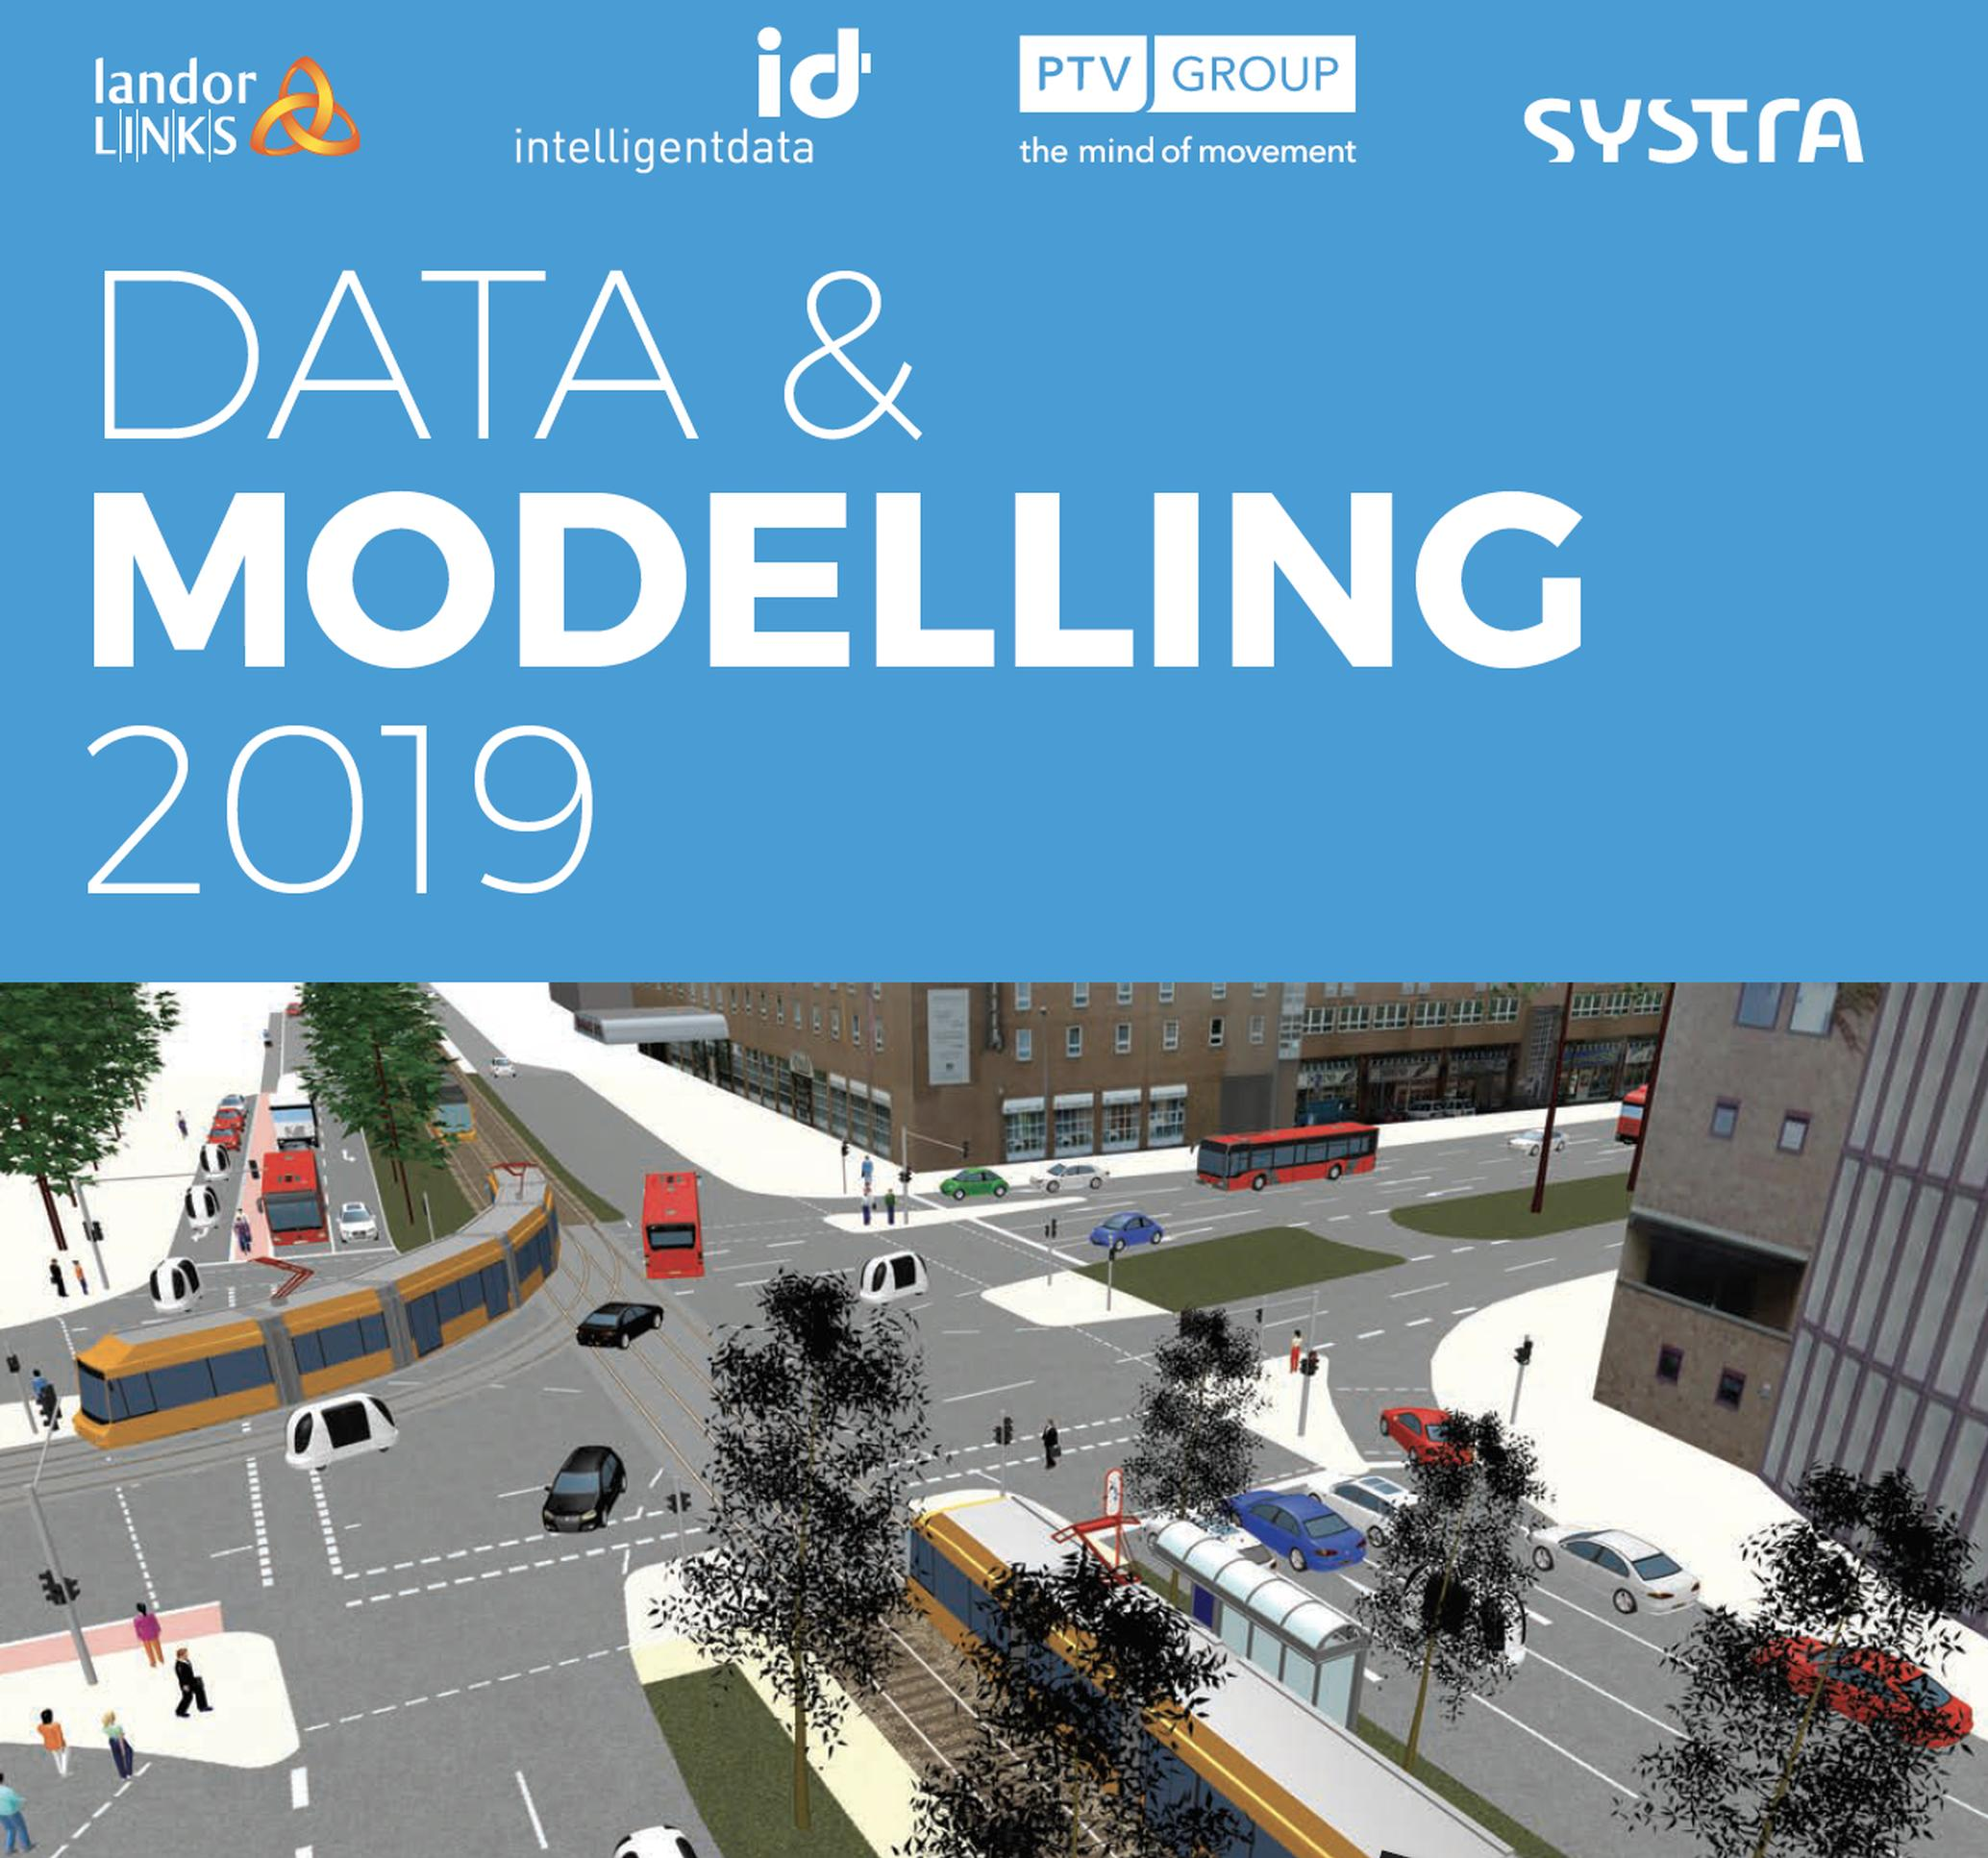 PDF download of the 2019 Data and Modelling publication: click the link below